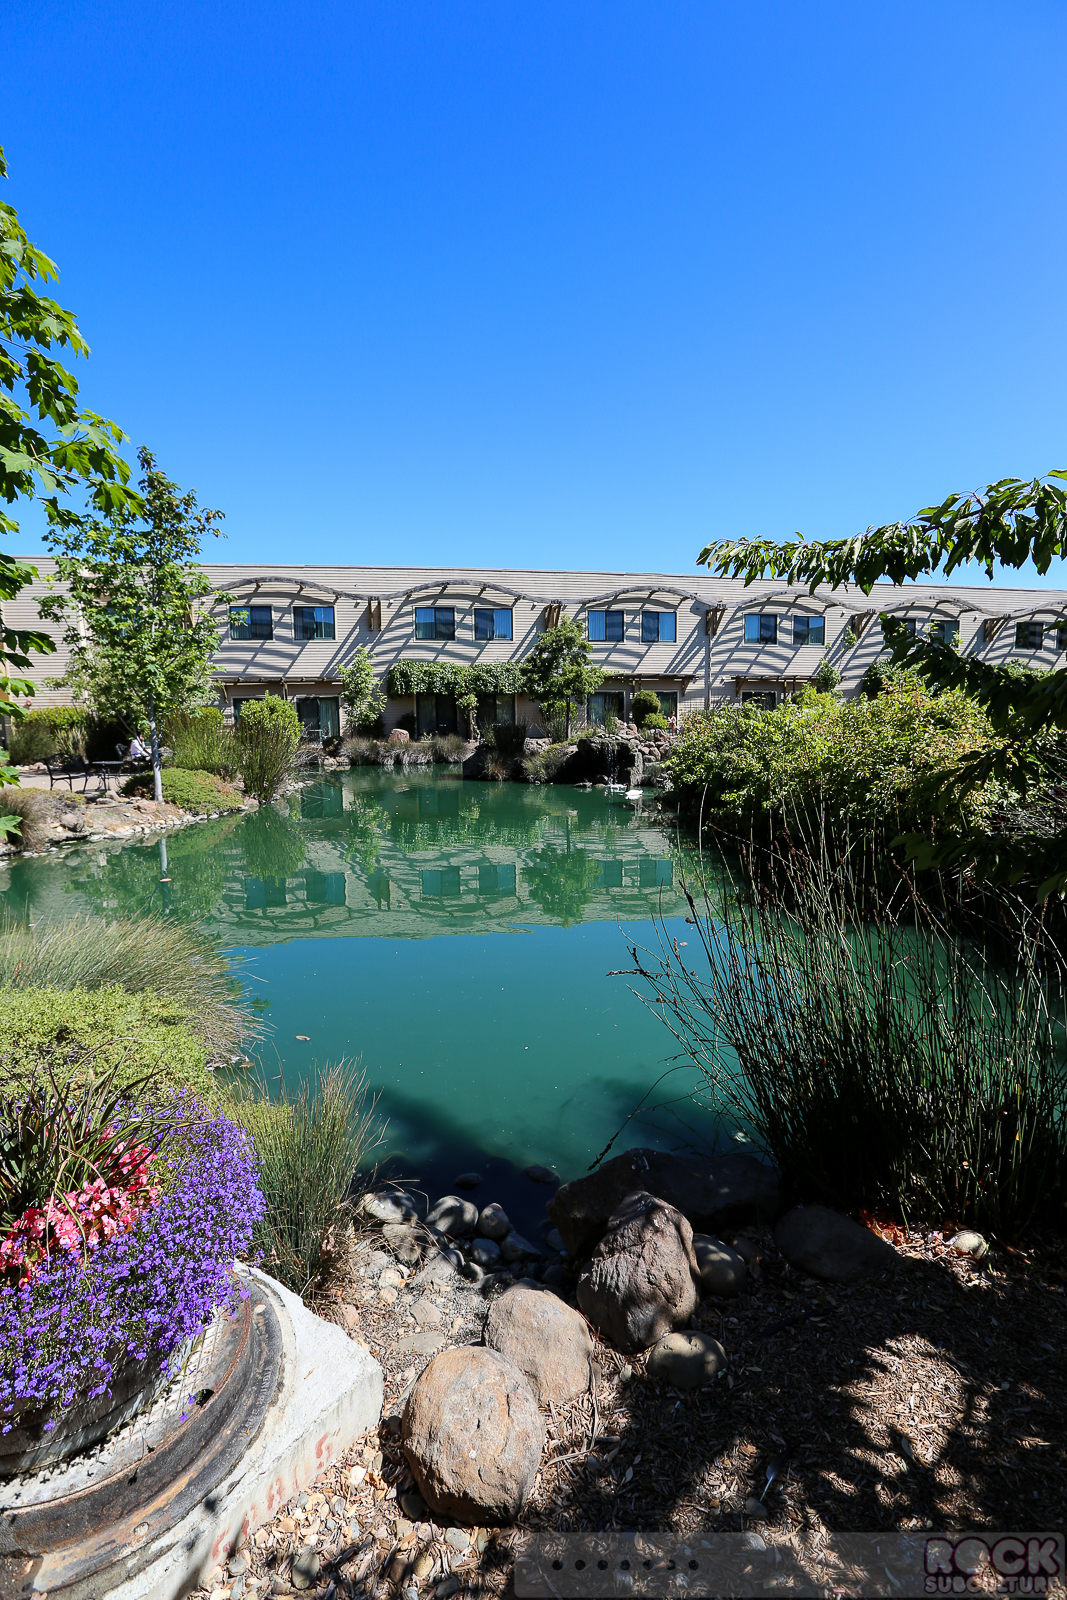 Hotel/Resort Review: DoubleTree by Hilton Hotel & Spa Napa Valley – American Canyon, California